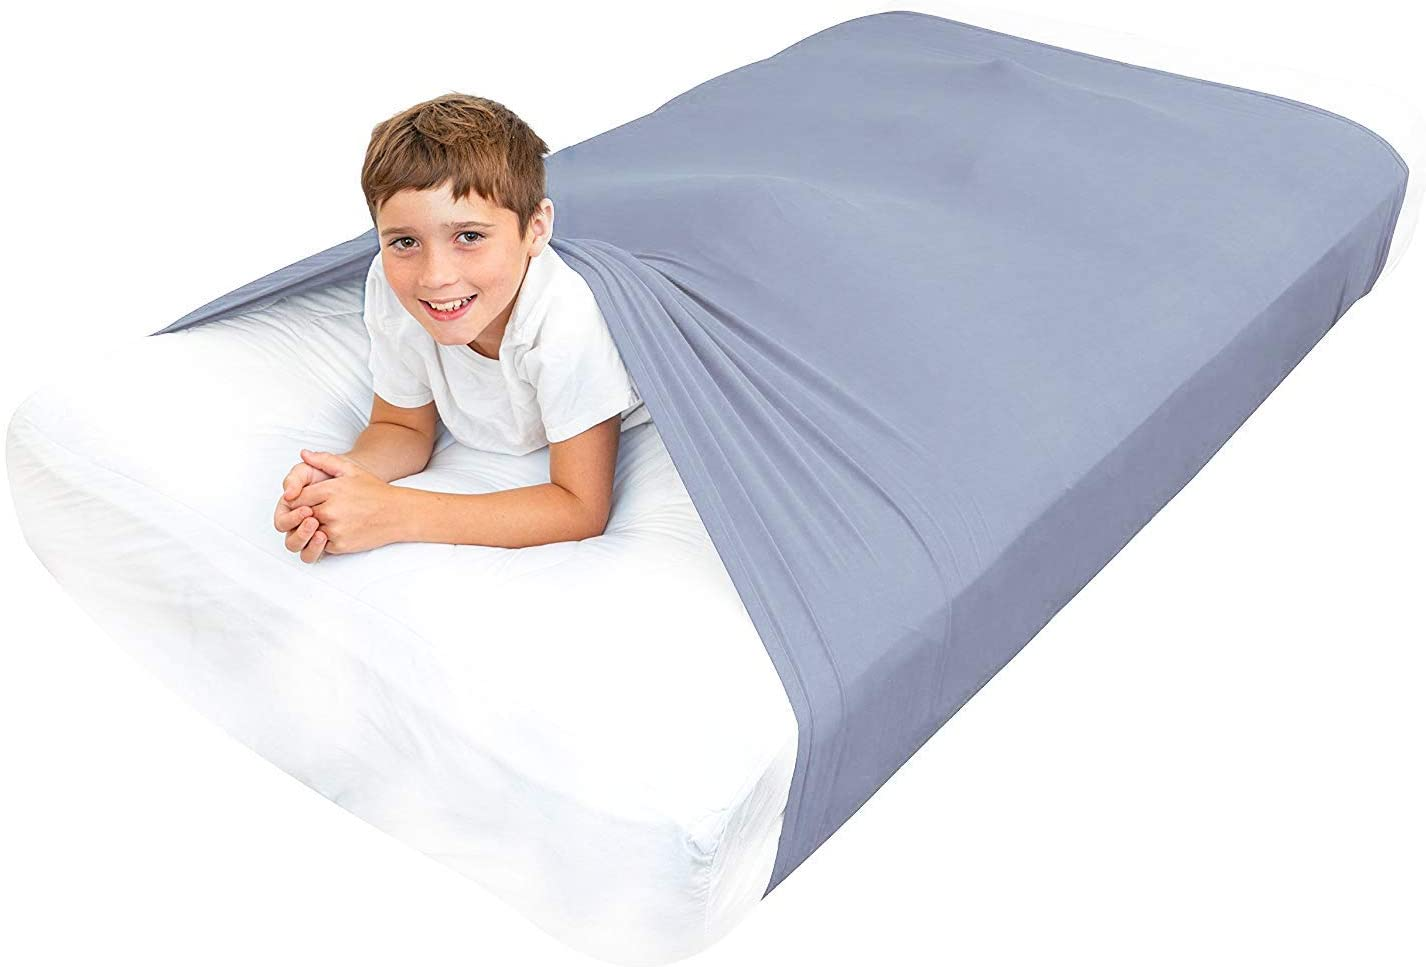 Sensory Sales results No. 1 Bed Sheet for Kids Size OFFicial site Compression Queen to Alternative